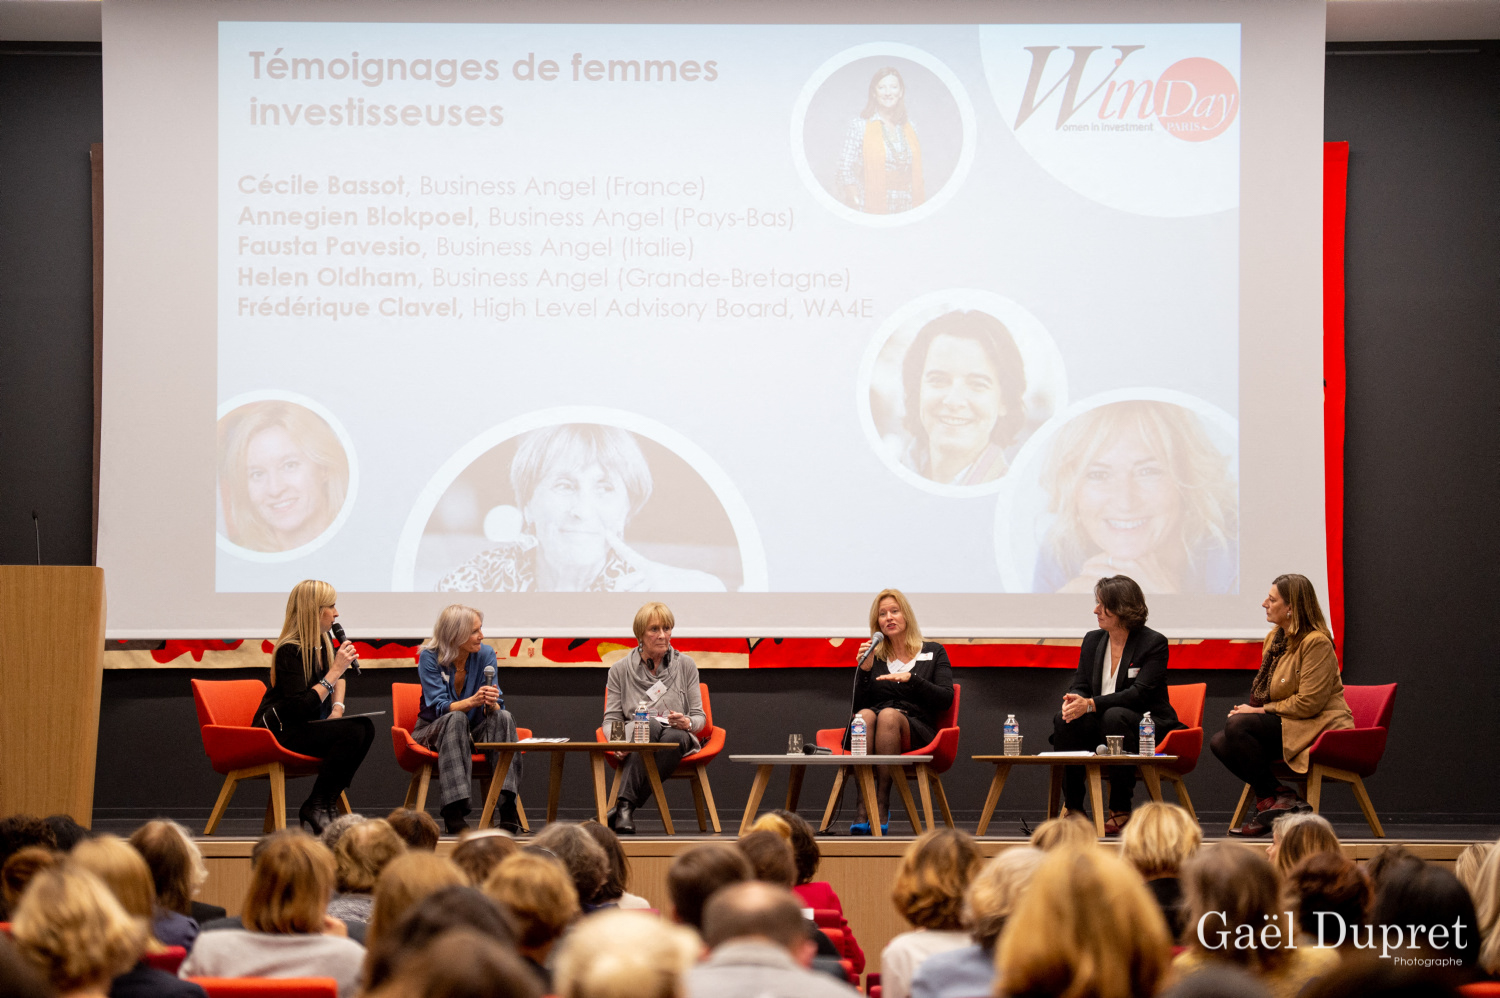 ©Gaël Dupret, France, Paris le 2018-11-15 : 2ème édition des WINDAY Paris par FBA - Femmes Business Angels. Photo : Témoignages de femmes investisseuses :  Helen OLDHAM, Business Angel (Grande Bretagne), Fausta PAVESIO, Business Angel (Italie), Annegien BLOKPOEL, Business Angel  (Pays-Bas), Cécile BASSOT, Business Angel (France) et Frédérique CLAVEL (France).   Testimonials from women investors: Helen OLDHAM, Business Angel (Great Britain), Fausta PAVESIO, Business Angel (Italy), Annegien BLOKPOEL, Business Angel (Netherlands), Cecile BASSOT, Business Angel (France) and Frederique CLAVEL (France).